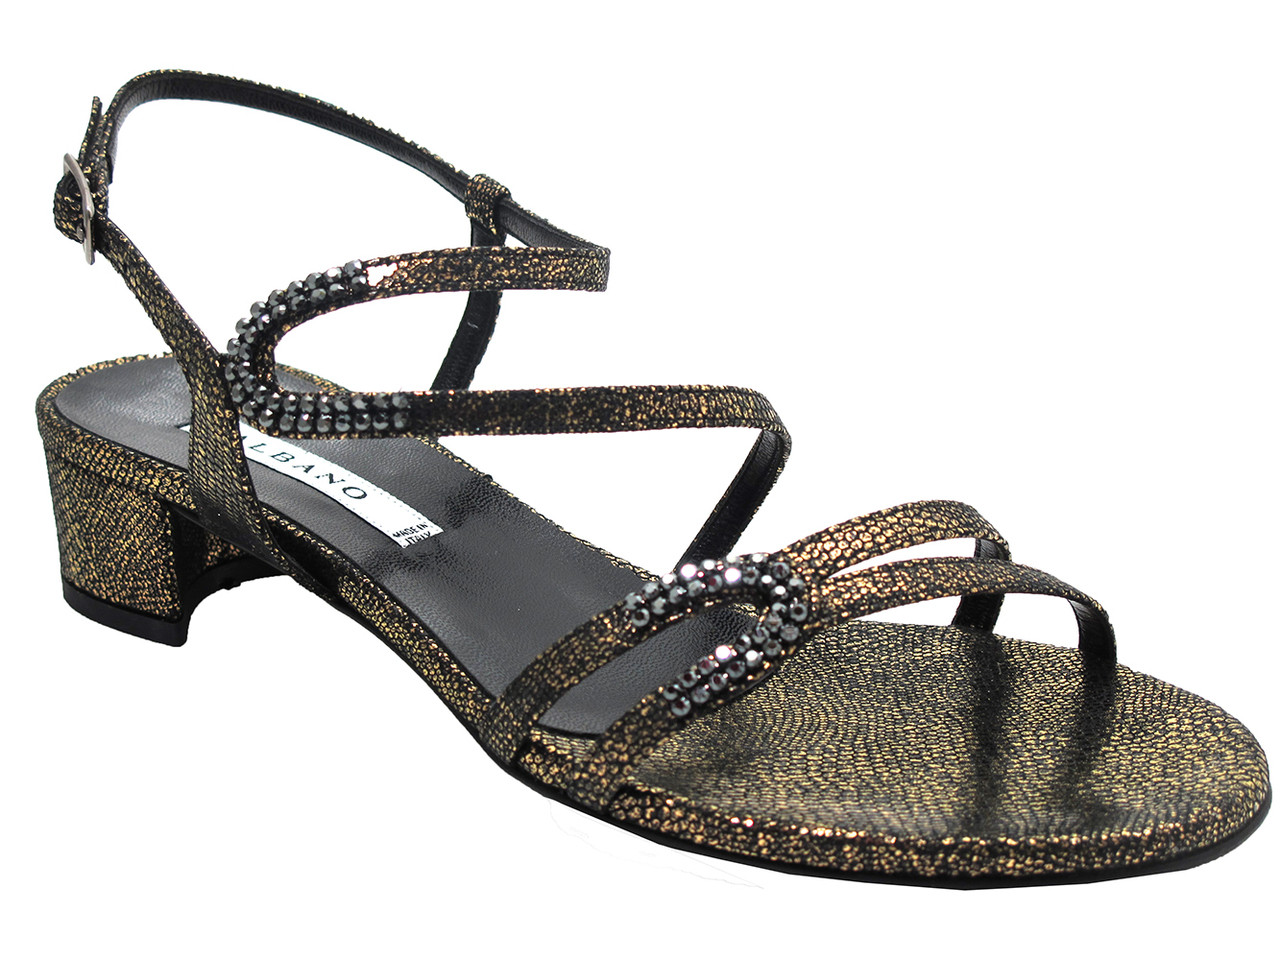 Albano 4774 Razza Nera Women's Low Heel Dressy Shimmer Sandal in BlackGold